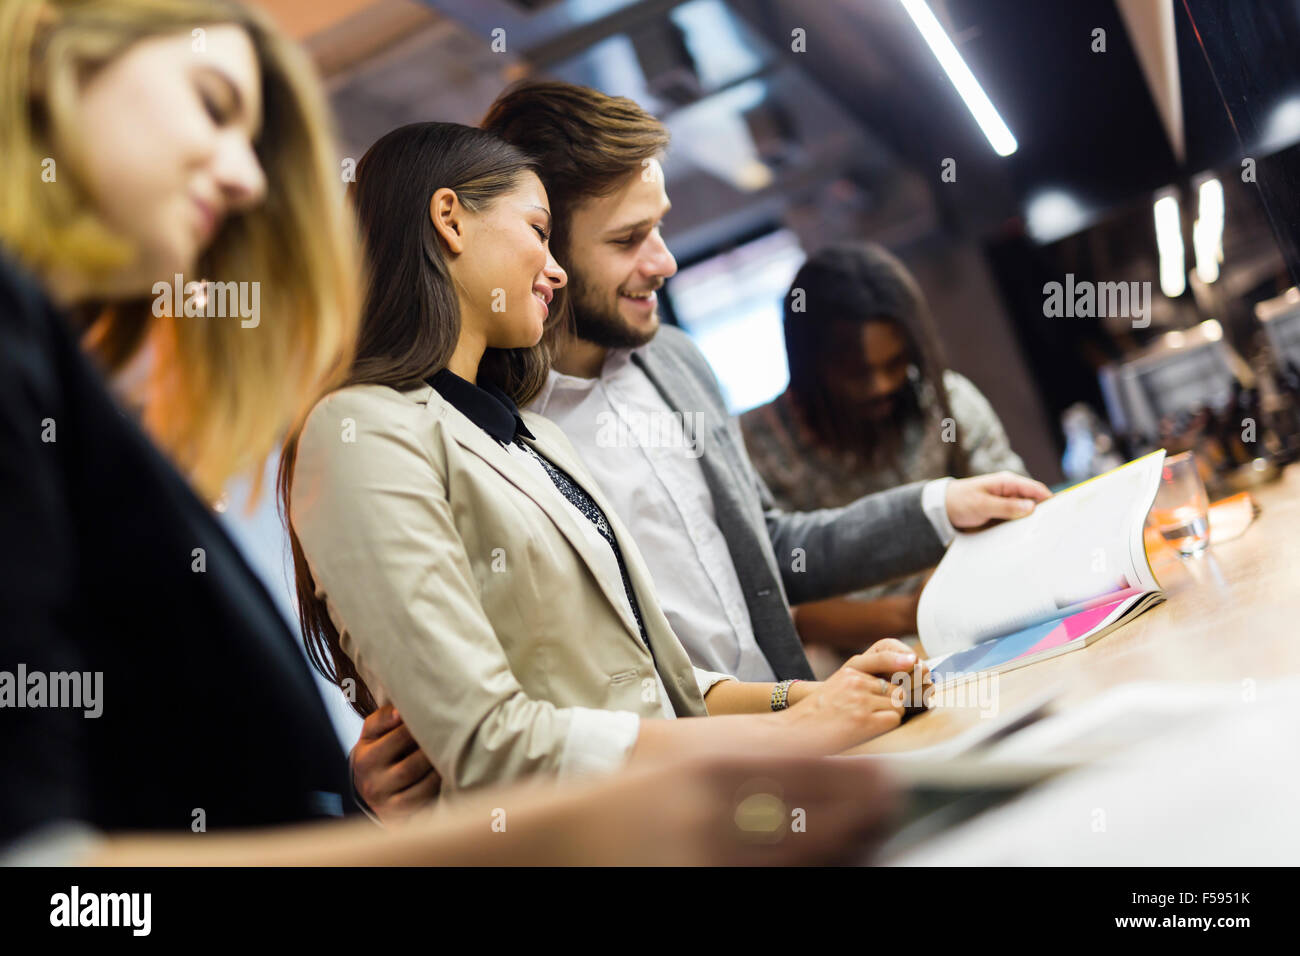 Business people in a pub relaxing and having fun - Stock Image